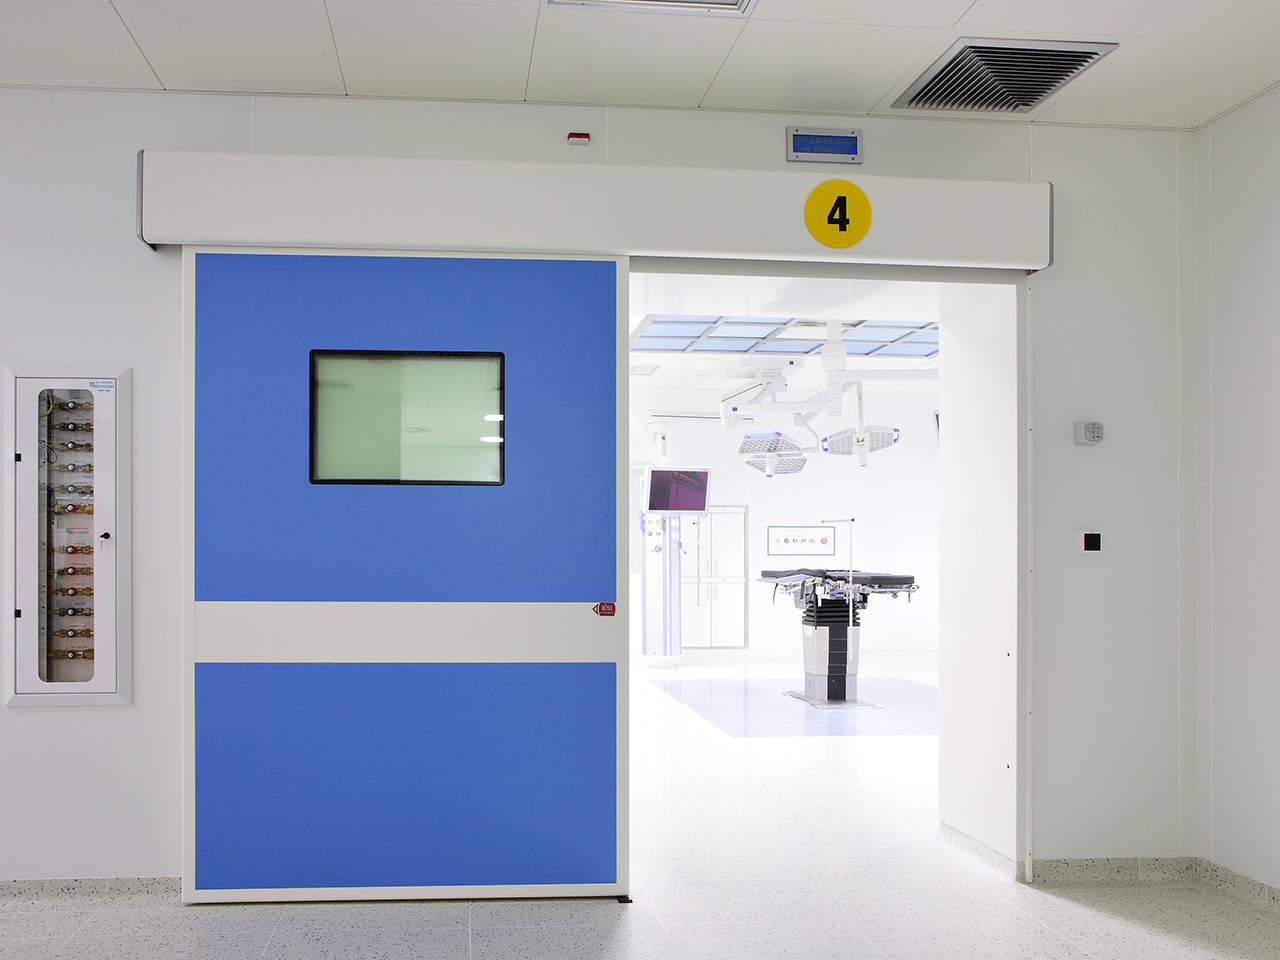 Development of OR, ICU & ER WARDS hospital areas - Conegliano Italy 19